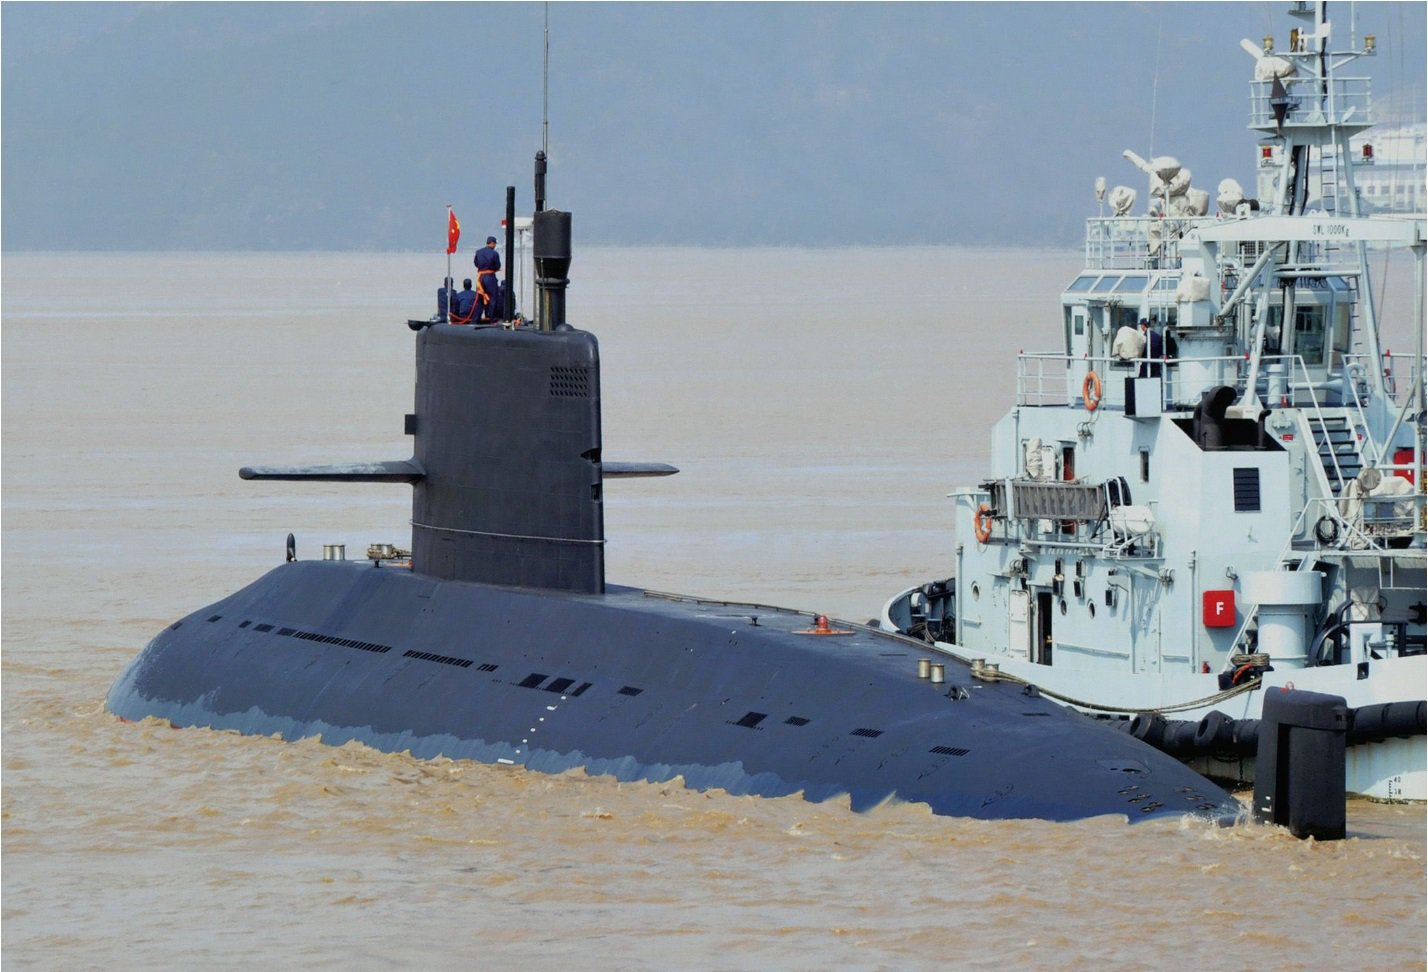 S26T is based on the PLAN Type 039A SSK